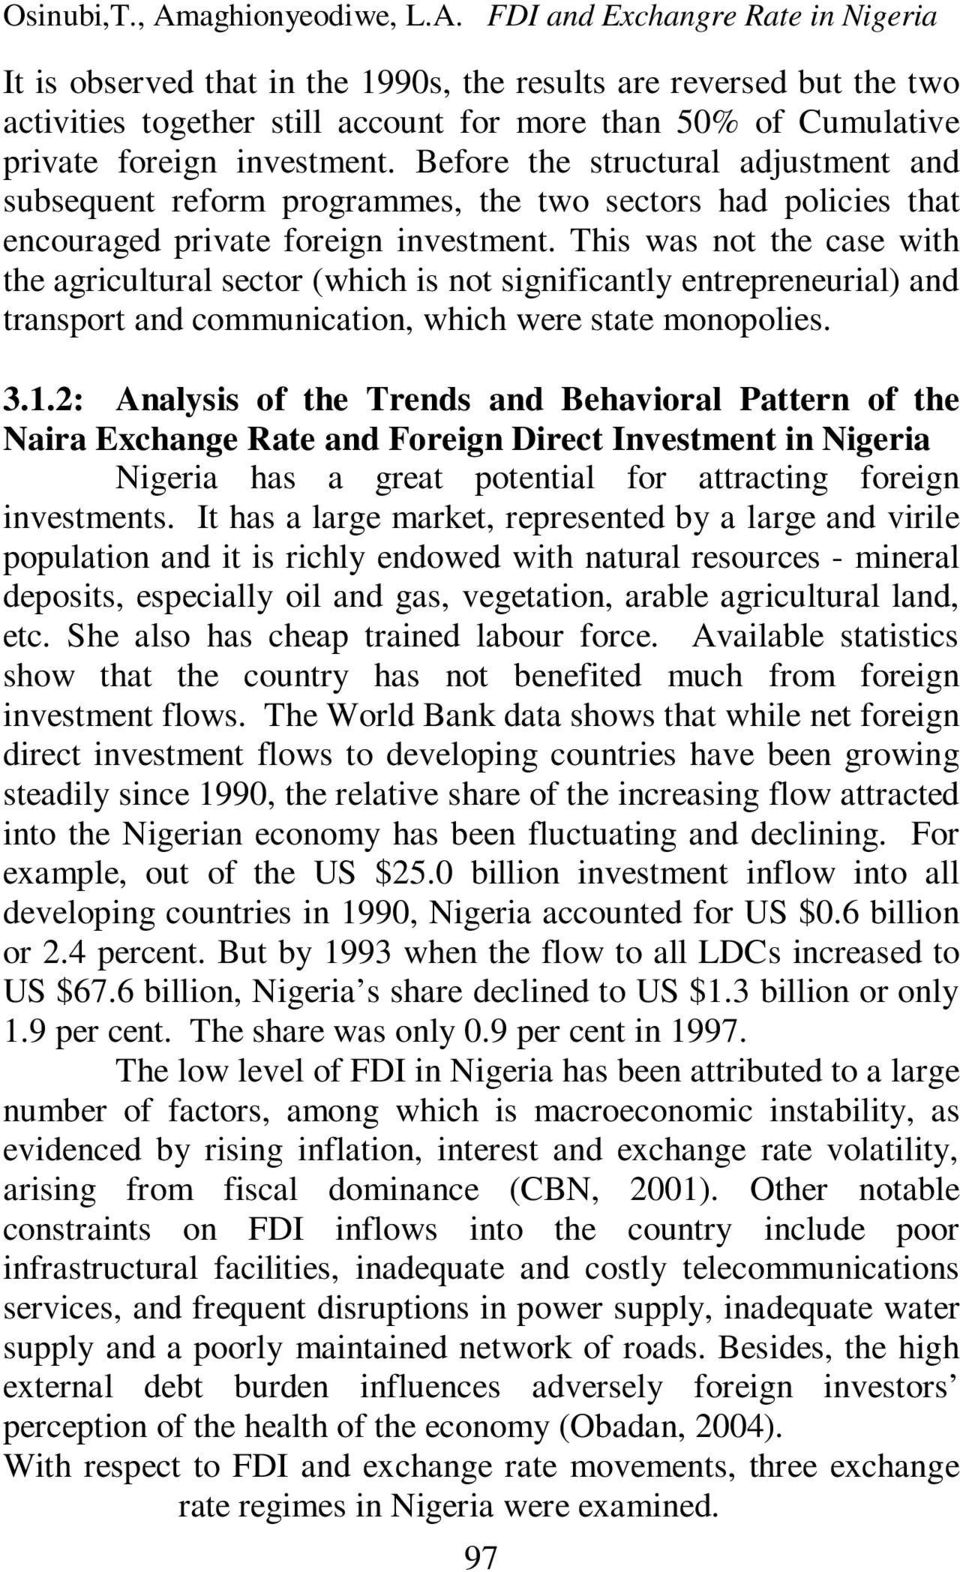 FDI and Exchangre Rate in Nigeria It is observed that in the 1990s, the results are reversed but the two activities together still account for more than 50% of Cumulative private foreign investment.